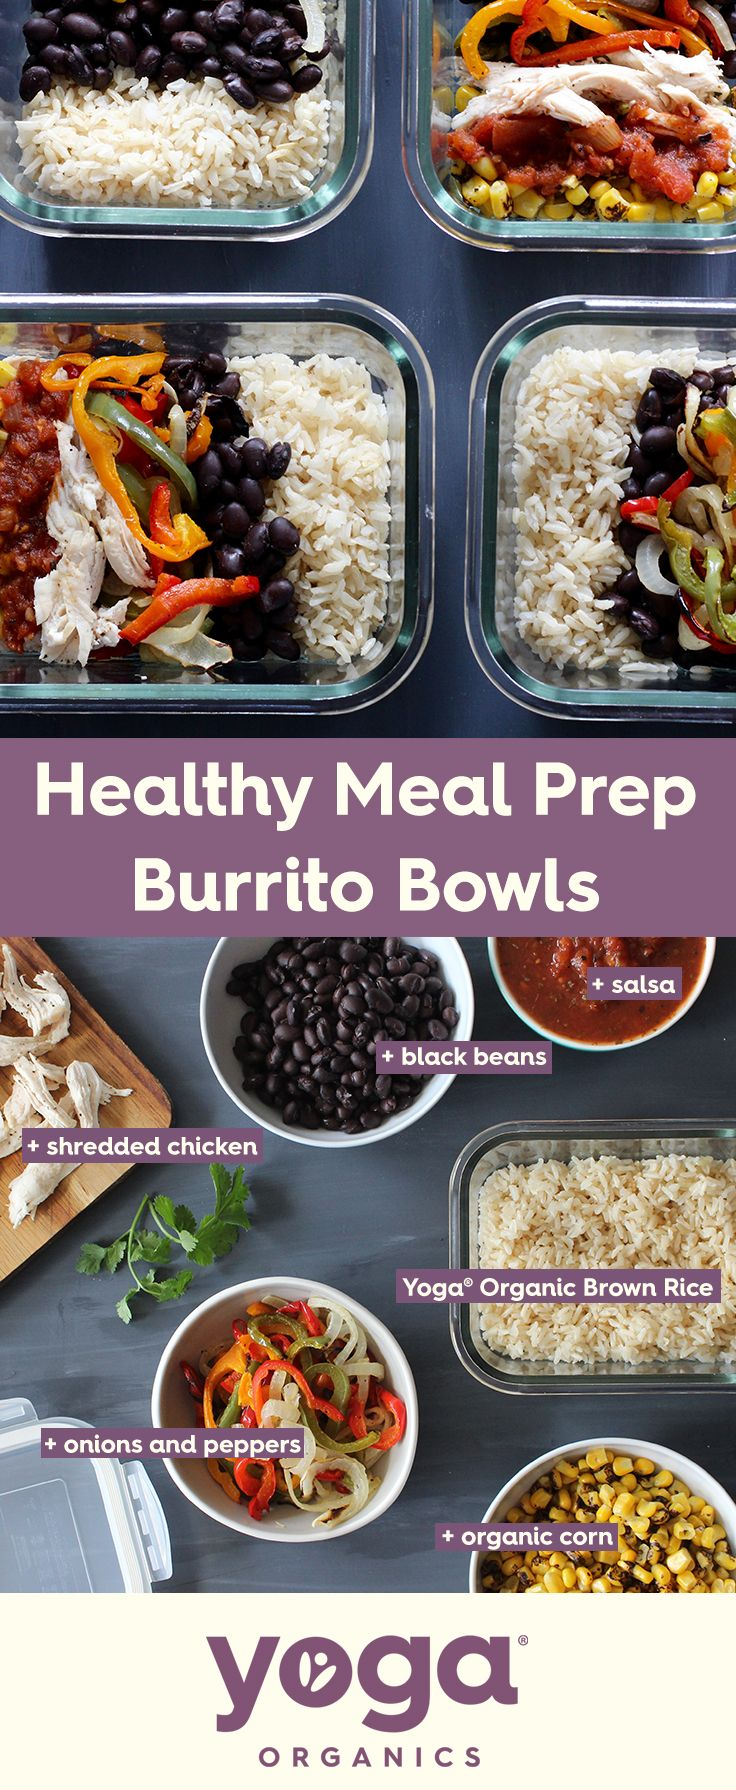 Meal Prep Burrito Bowls: Ingredients- 2 Cups Yoga Long Grain Brown Rice + Chicken, cooked and shredded + 1/2 Red Pepper, sliced into thin strips +1/2 Green Pepper, sliced into thin strips +1/2 Orange Pepper, sliced into thin strips +Black Beans, drained and rinsed+ 1/2 Bag Frozen Corn, rinsed +Salsa, to taste. Directions- Arrange bowls: Distribute rice evenly between 4 microwave safe containers, then chicken, beans, peppers & onions, corn, beans, and salsa. Refrigerate for up to 4 days…